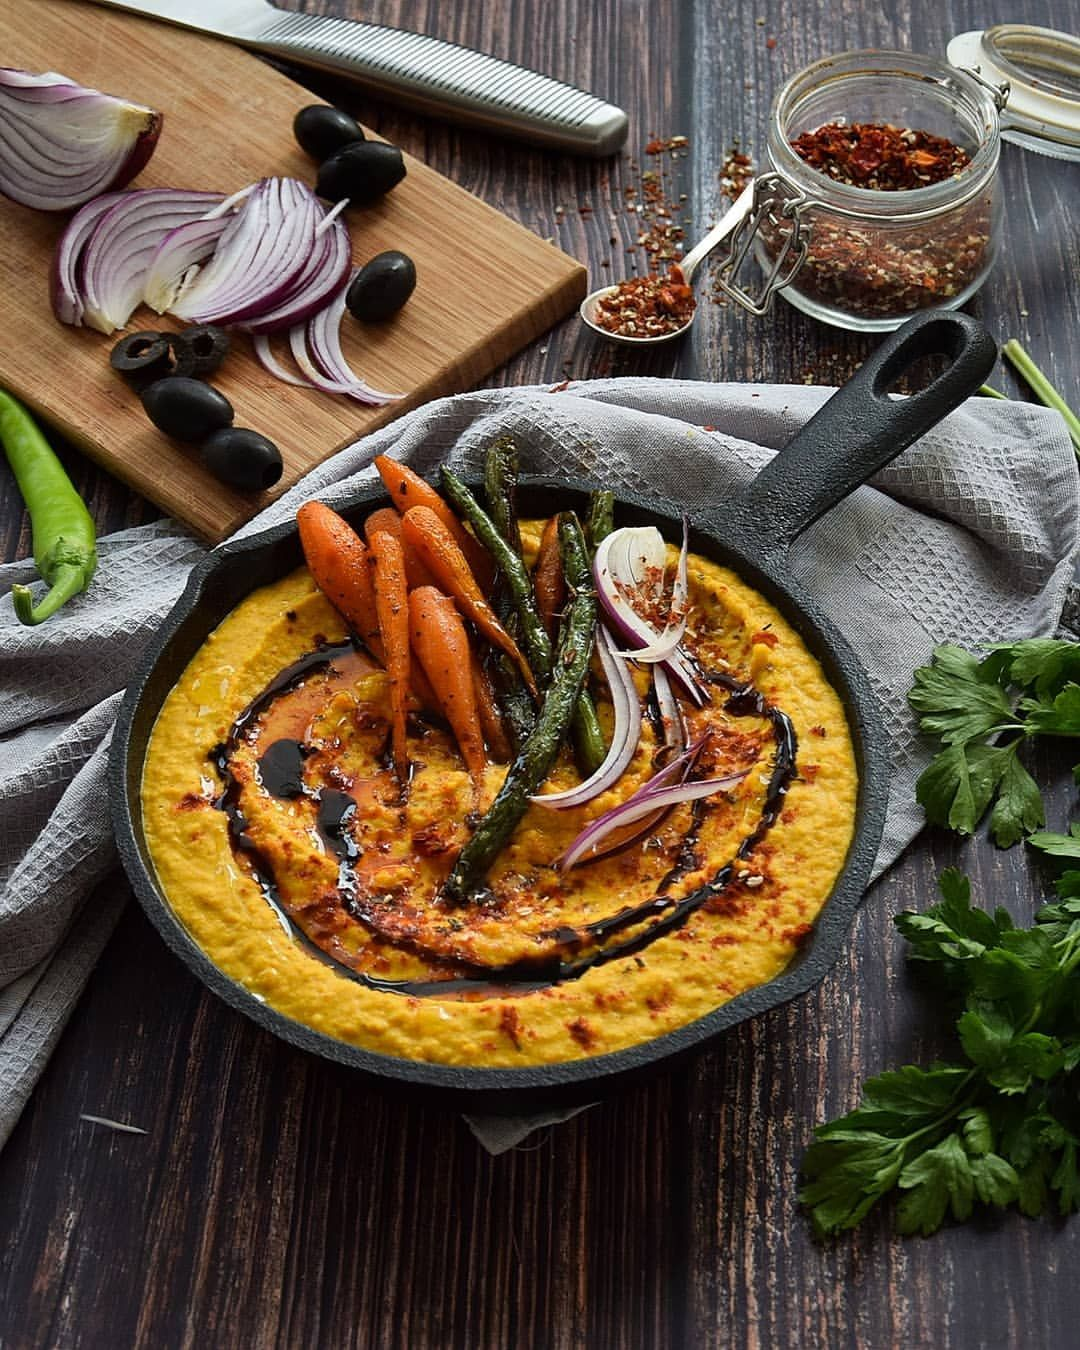 Red Lentil Paté with String Beans and Glazed Carrots